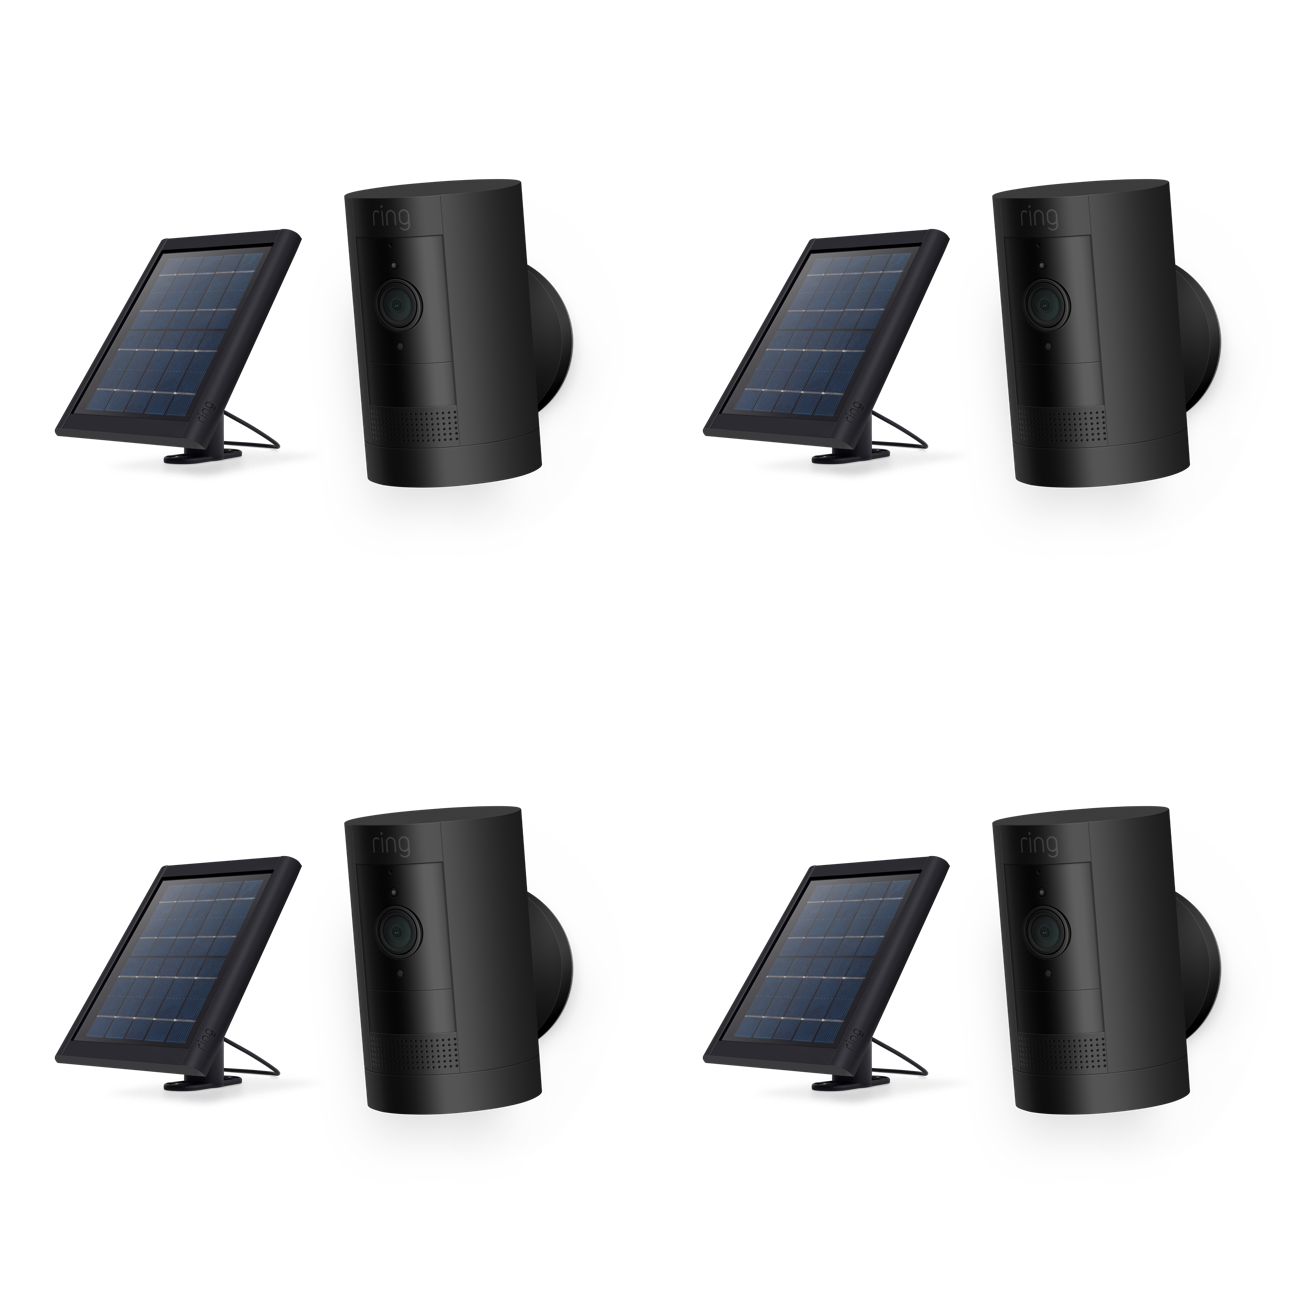 products/4pack_SUC_solar_black_1290x1290_Desktop_1512x_6d10ed98-1833-4090-90ce-71046847ef9e.png